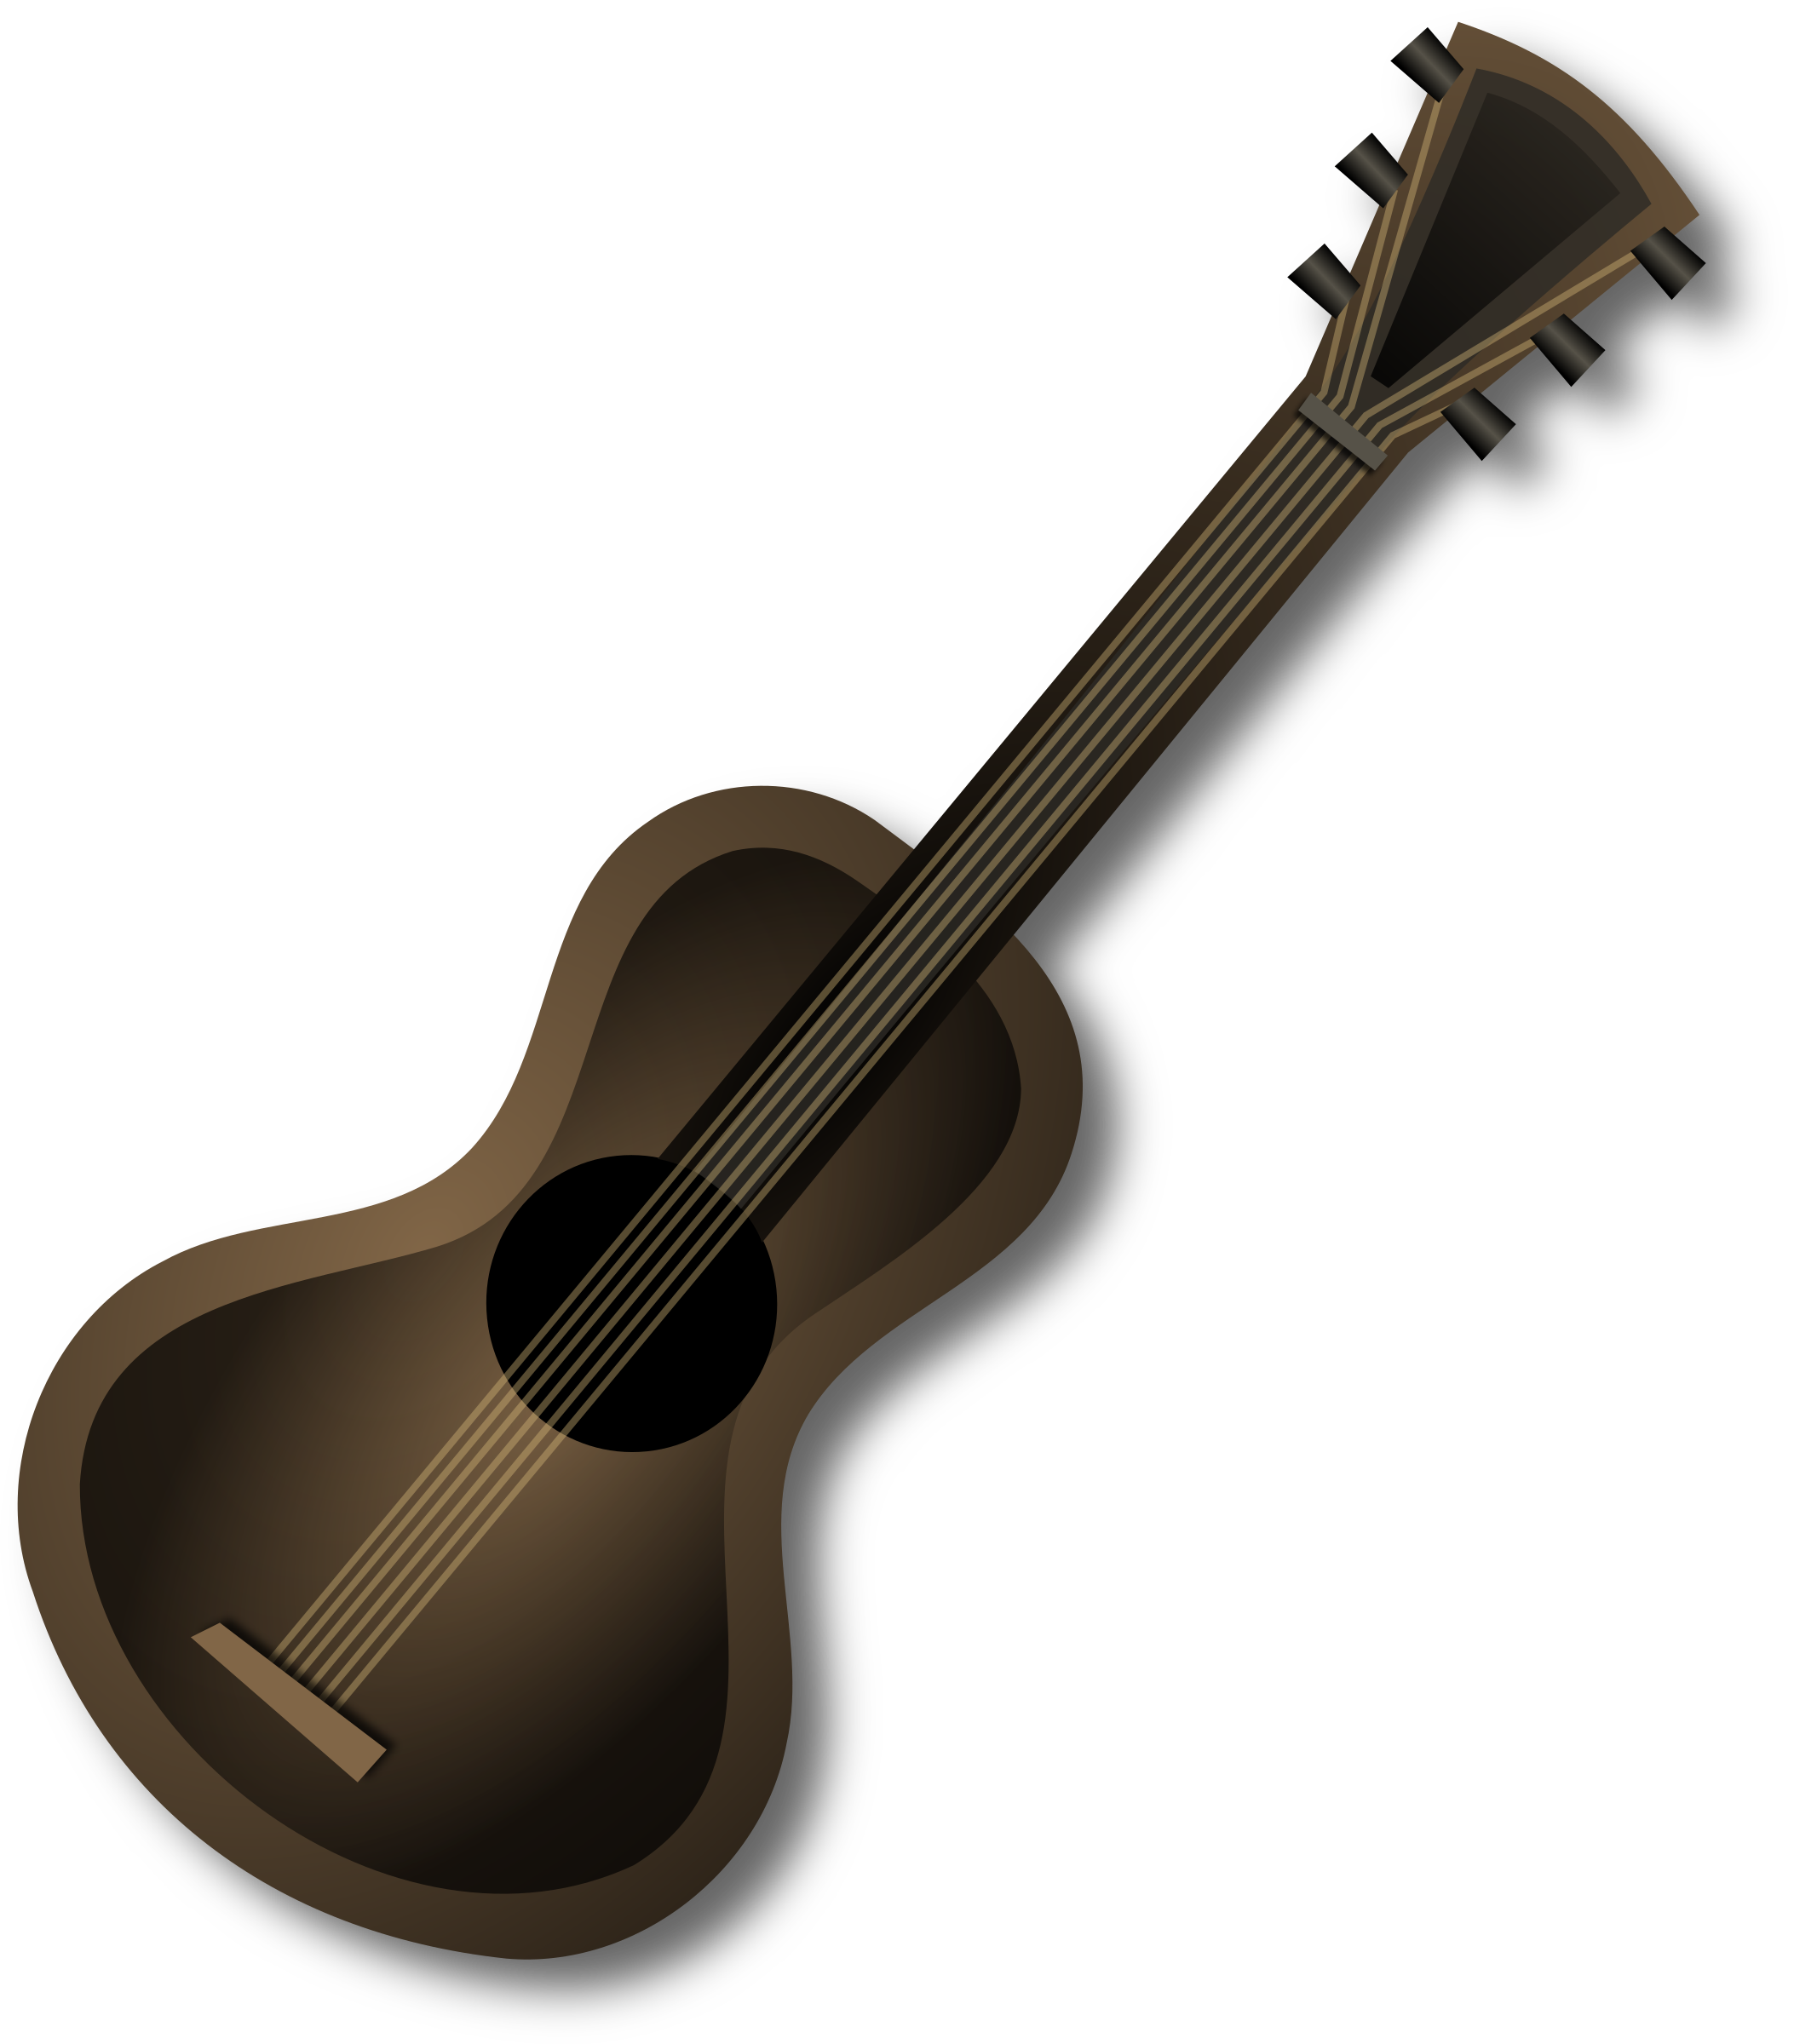 Clipart guitar brown guitar. Icons png free and